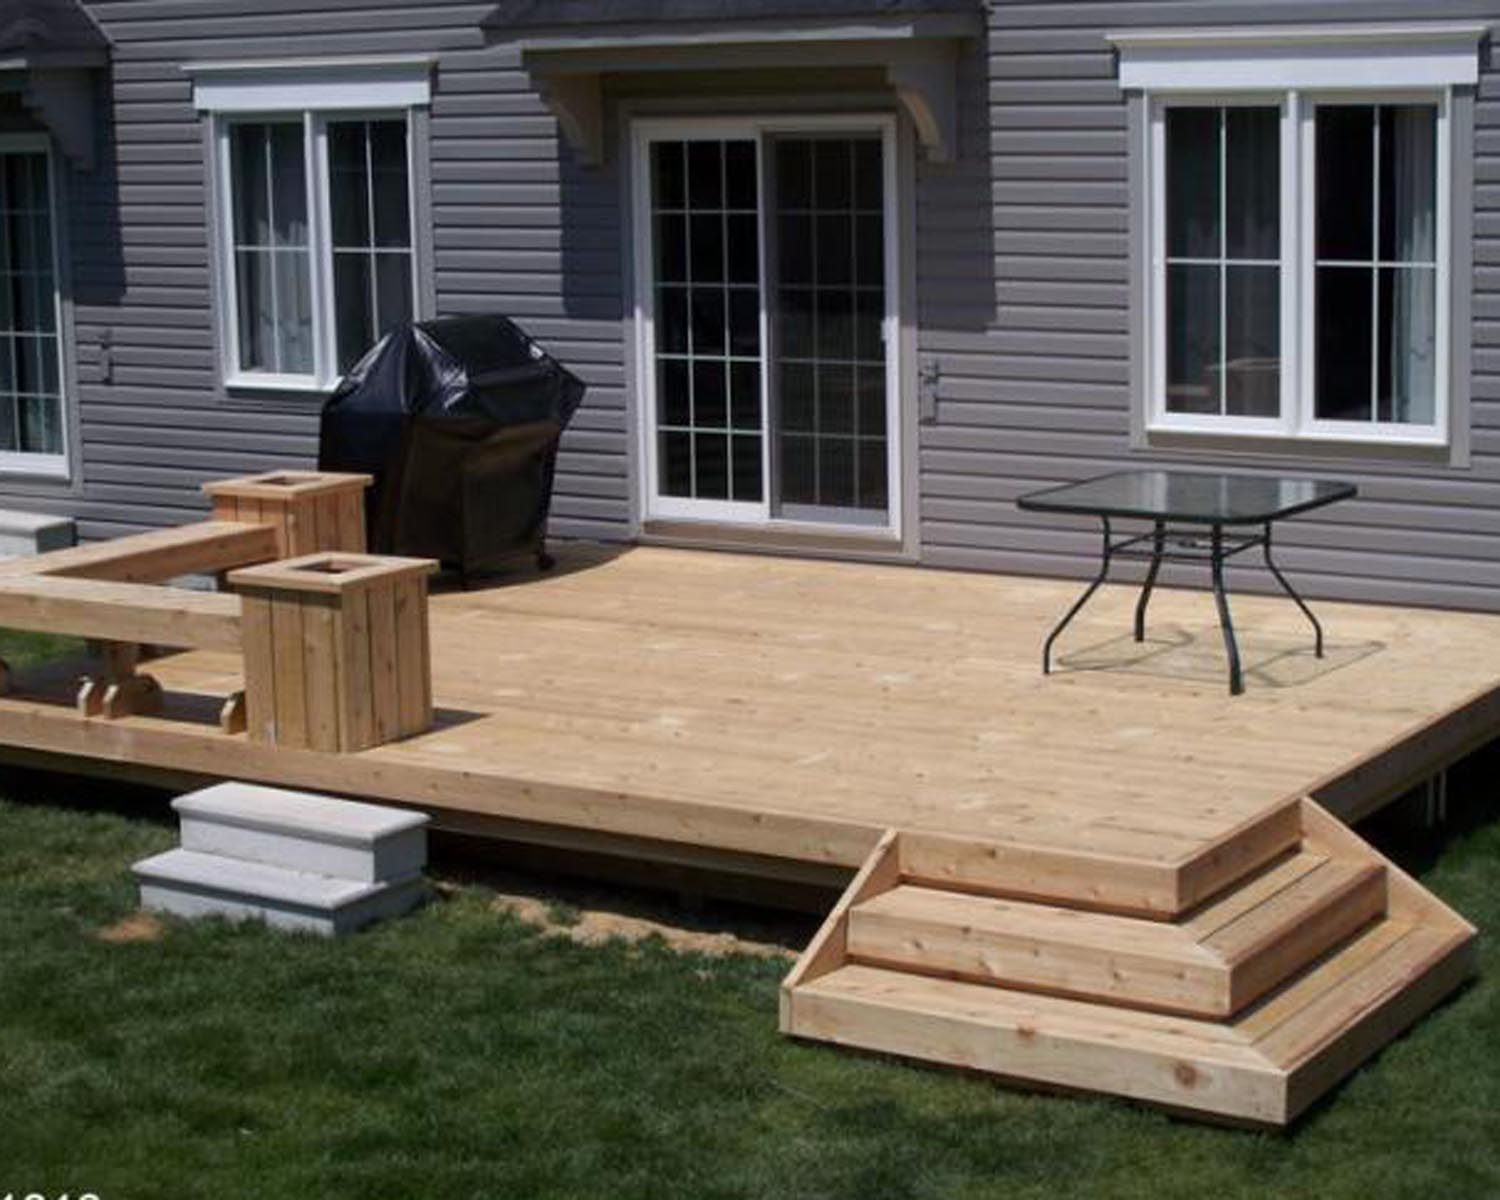 Decks Design Ideas magnificent raised wooden deck design ideas Deck Ideas Be More When Deck Building Simple But Functional Designs Can